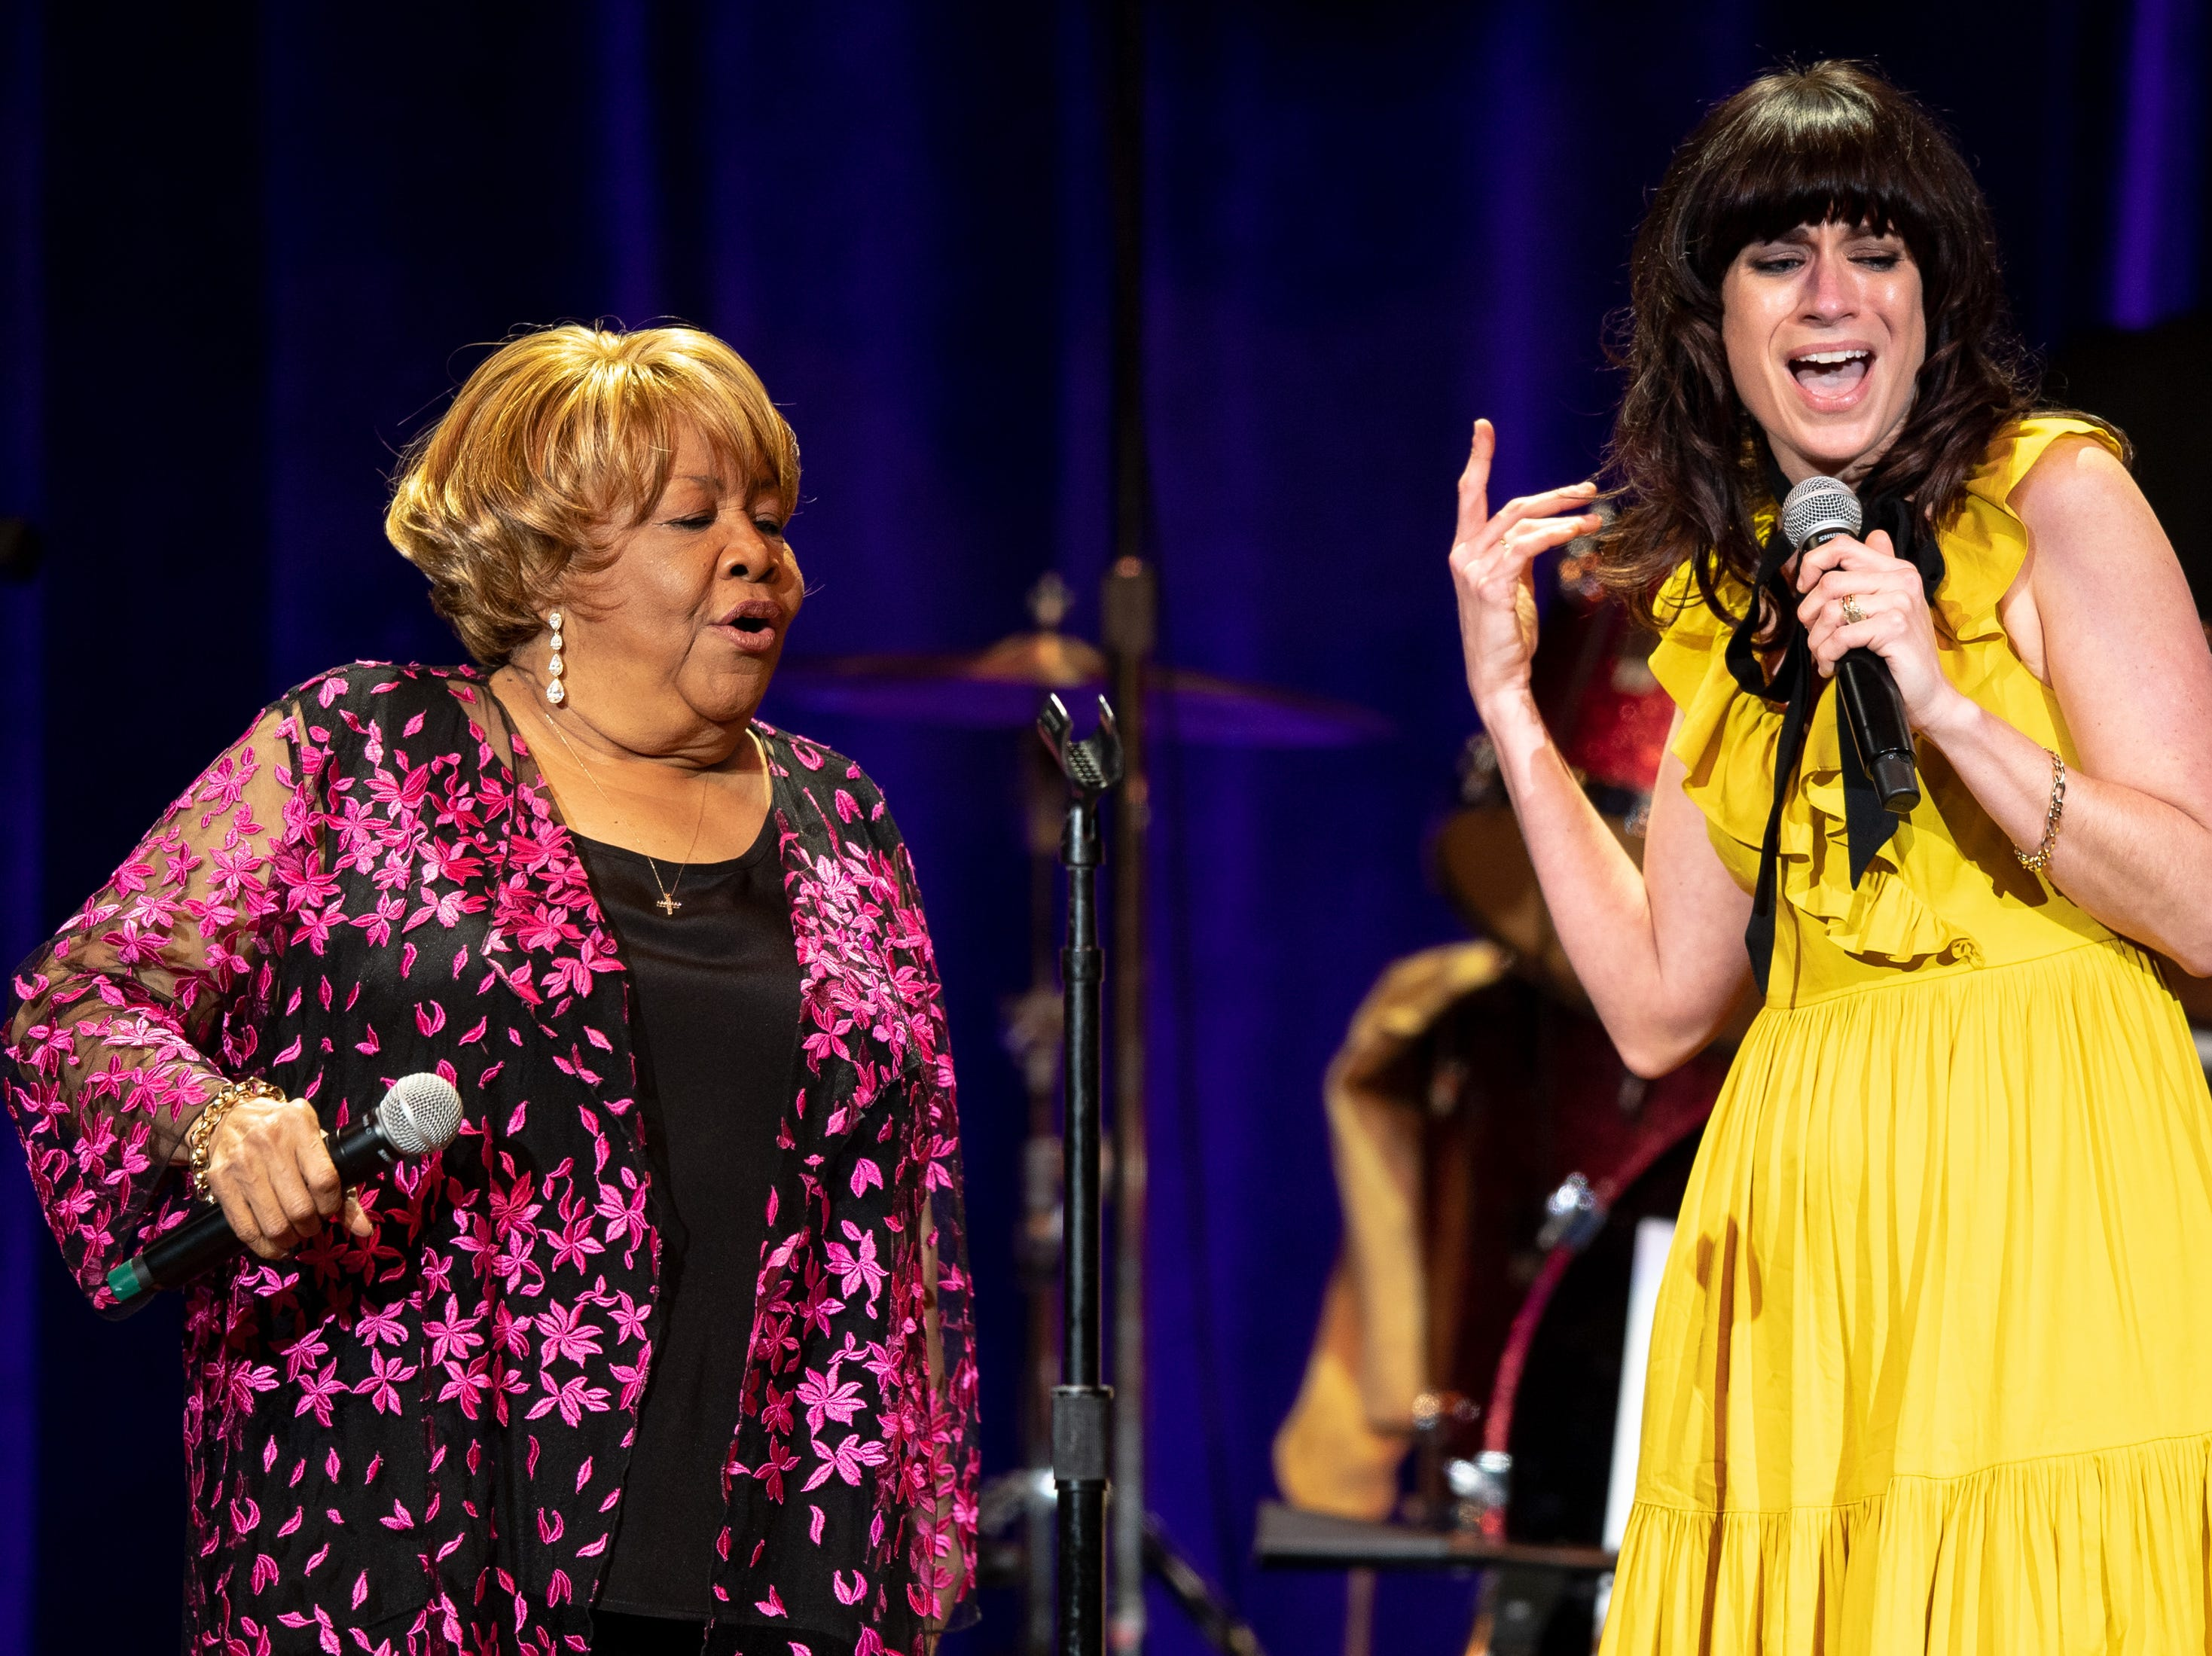 Mavis Staples performs with Nicole Atkins during the Mavis and Friends concert at the Ryman Auditorium in Nashville, Tenn., Wednesday, May 15, 2019.